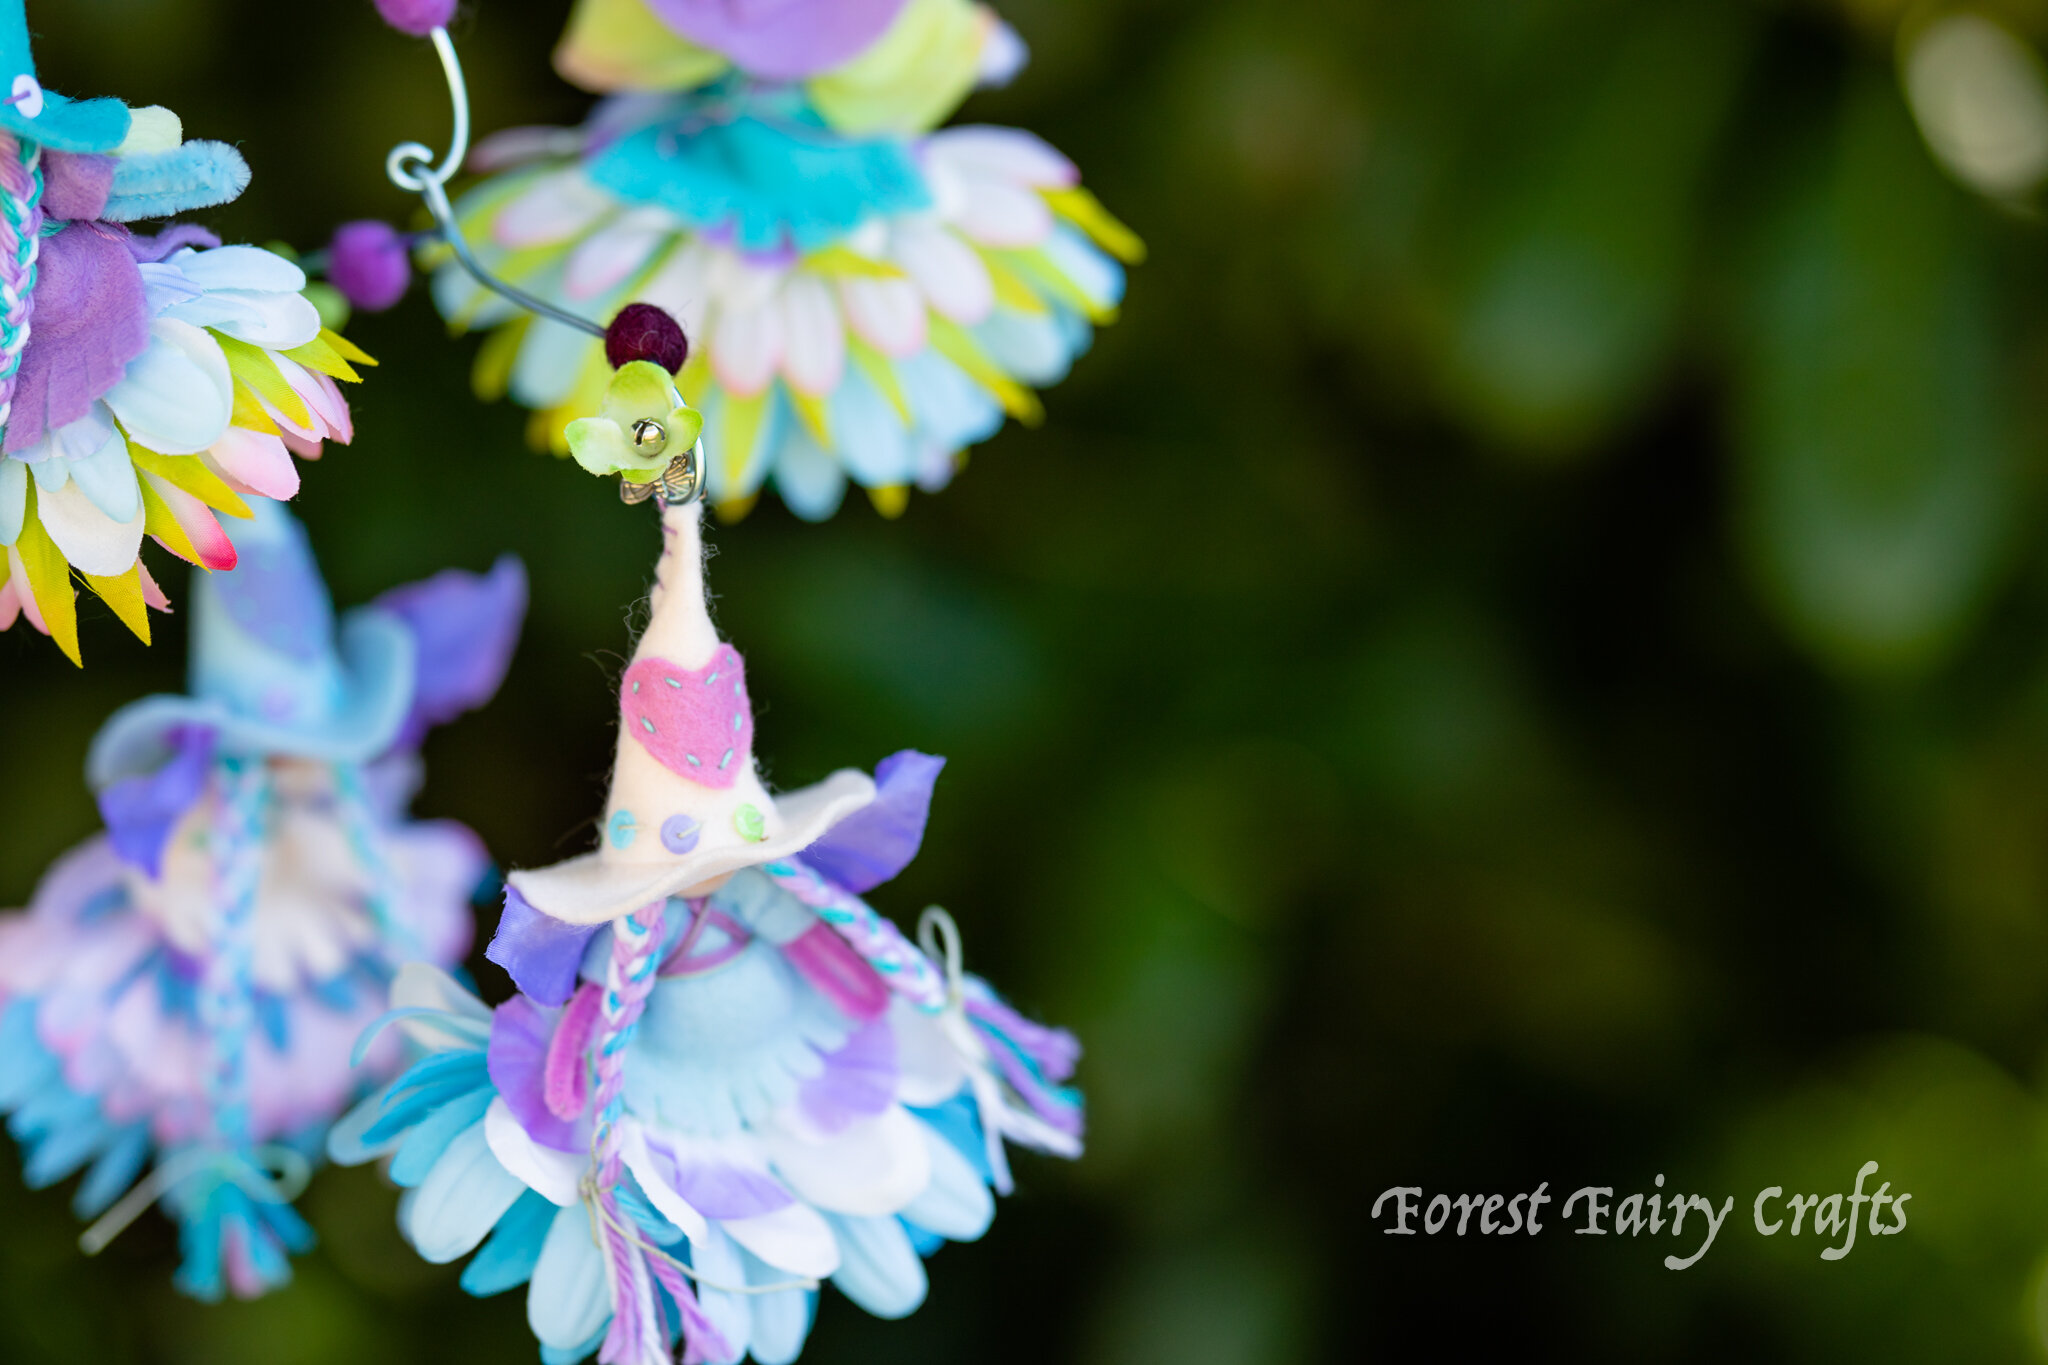 Fairy witch | Directions are in the Forest Fairy Crafts book by Lenka Vodicka-Paredes and Asia Currie